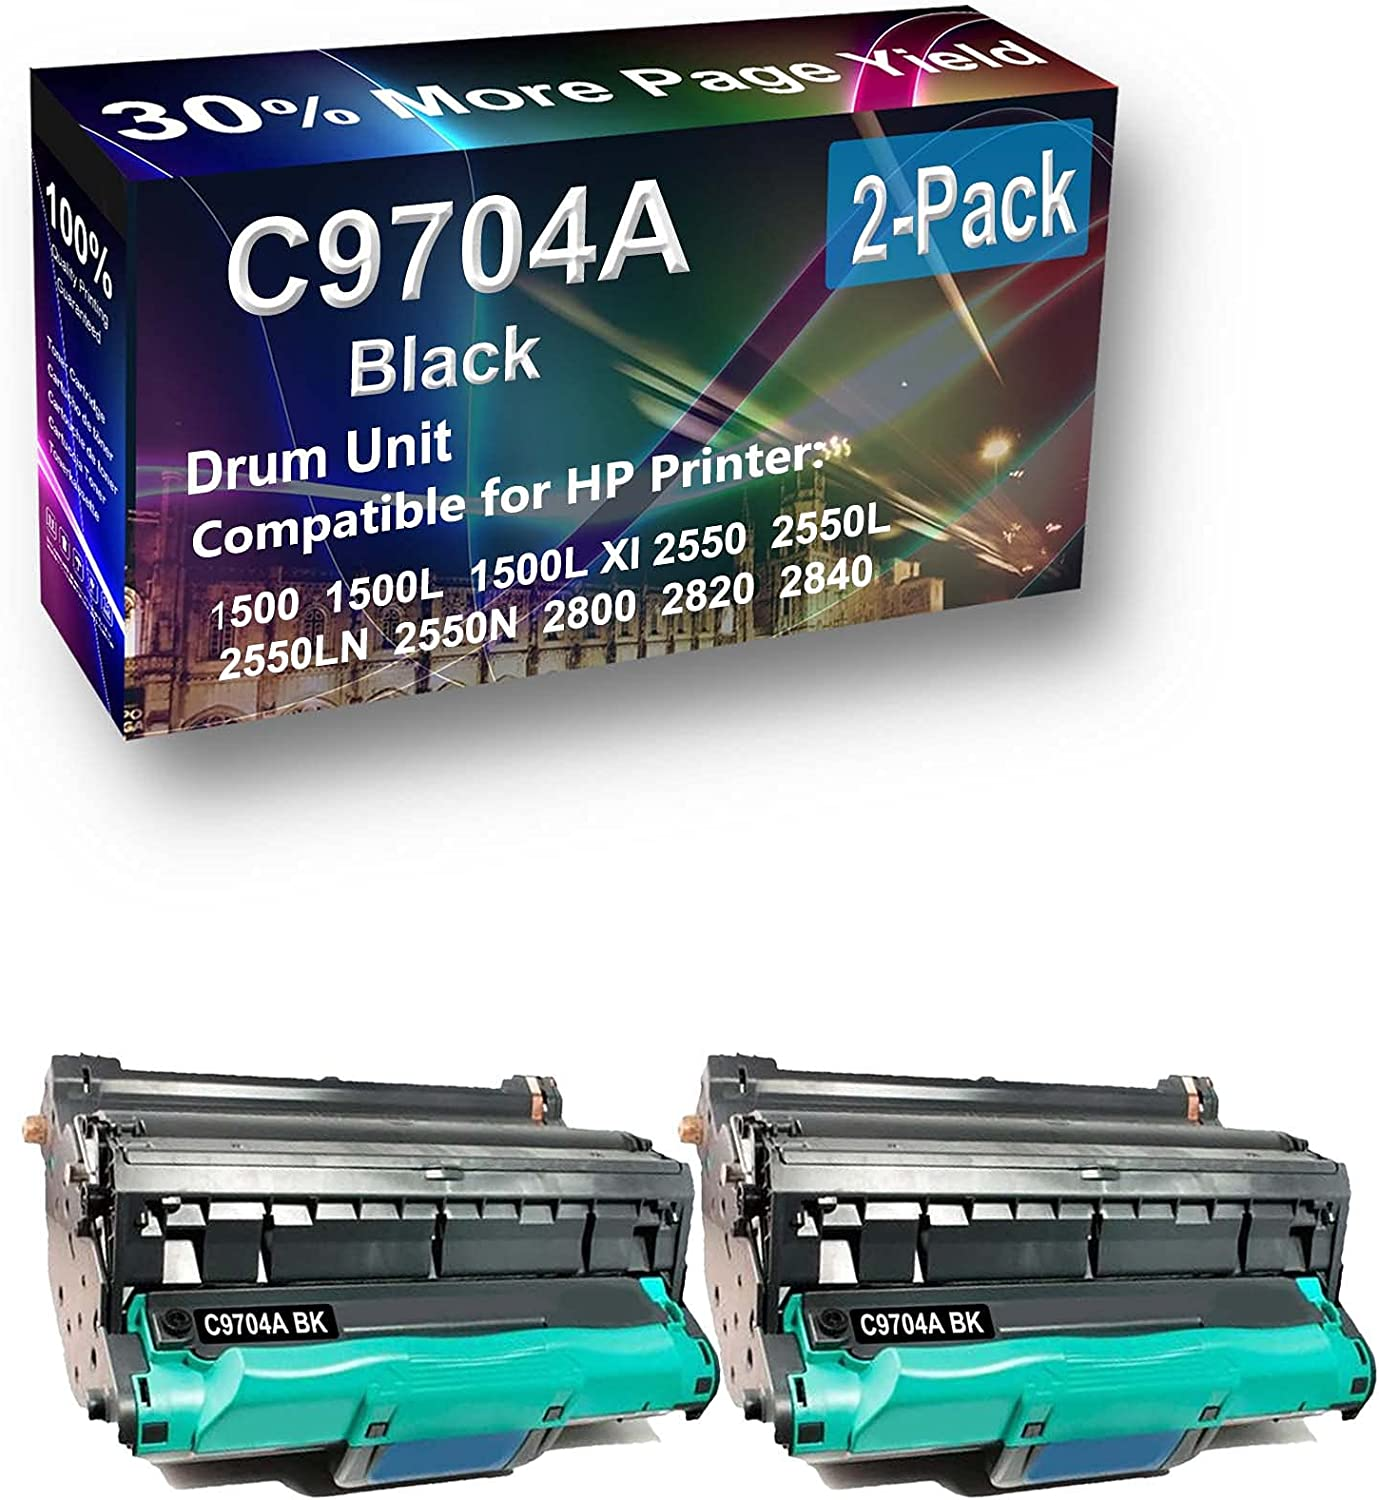 2-Pack Compatible C9704A Drum Kit use for HP 1500 1500L 1500LXI Printer (Black)